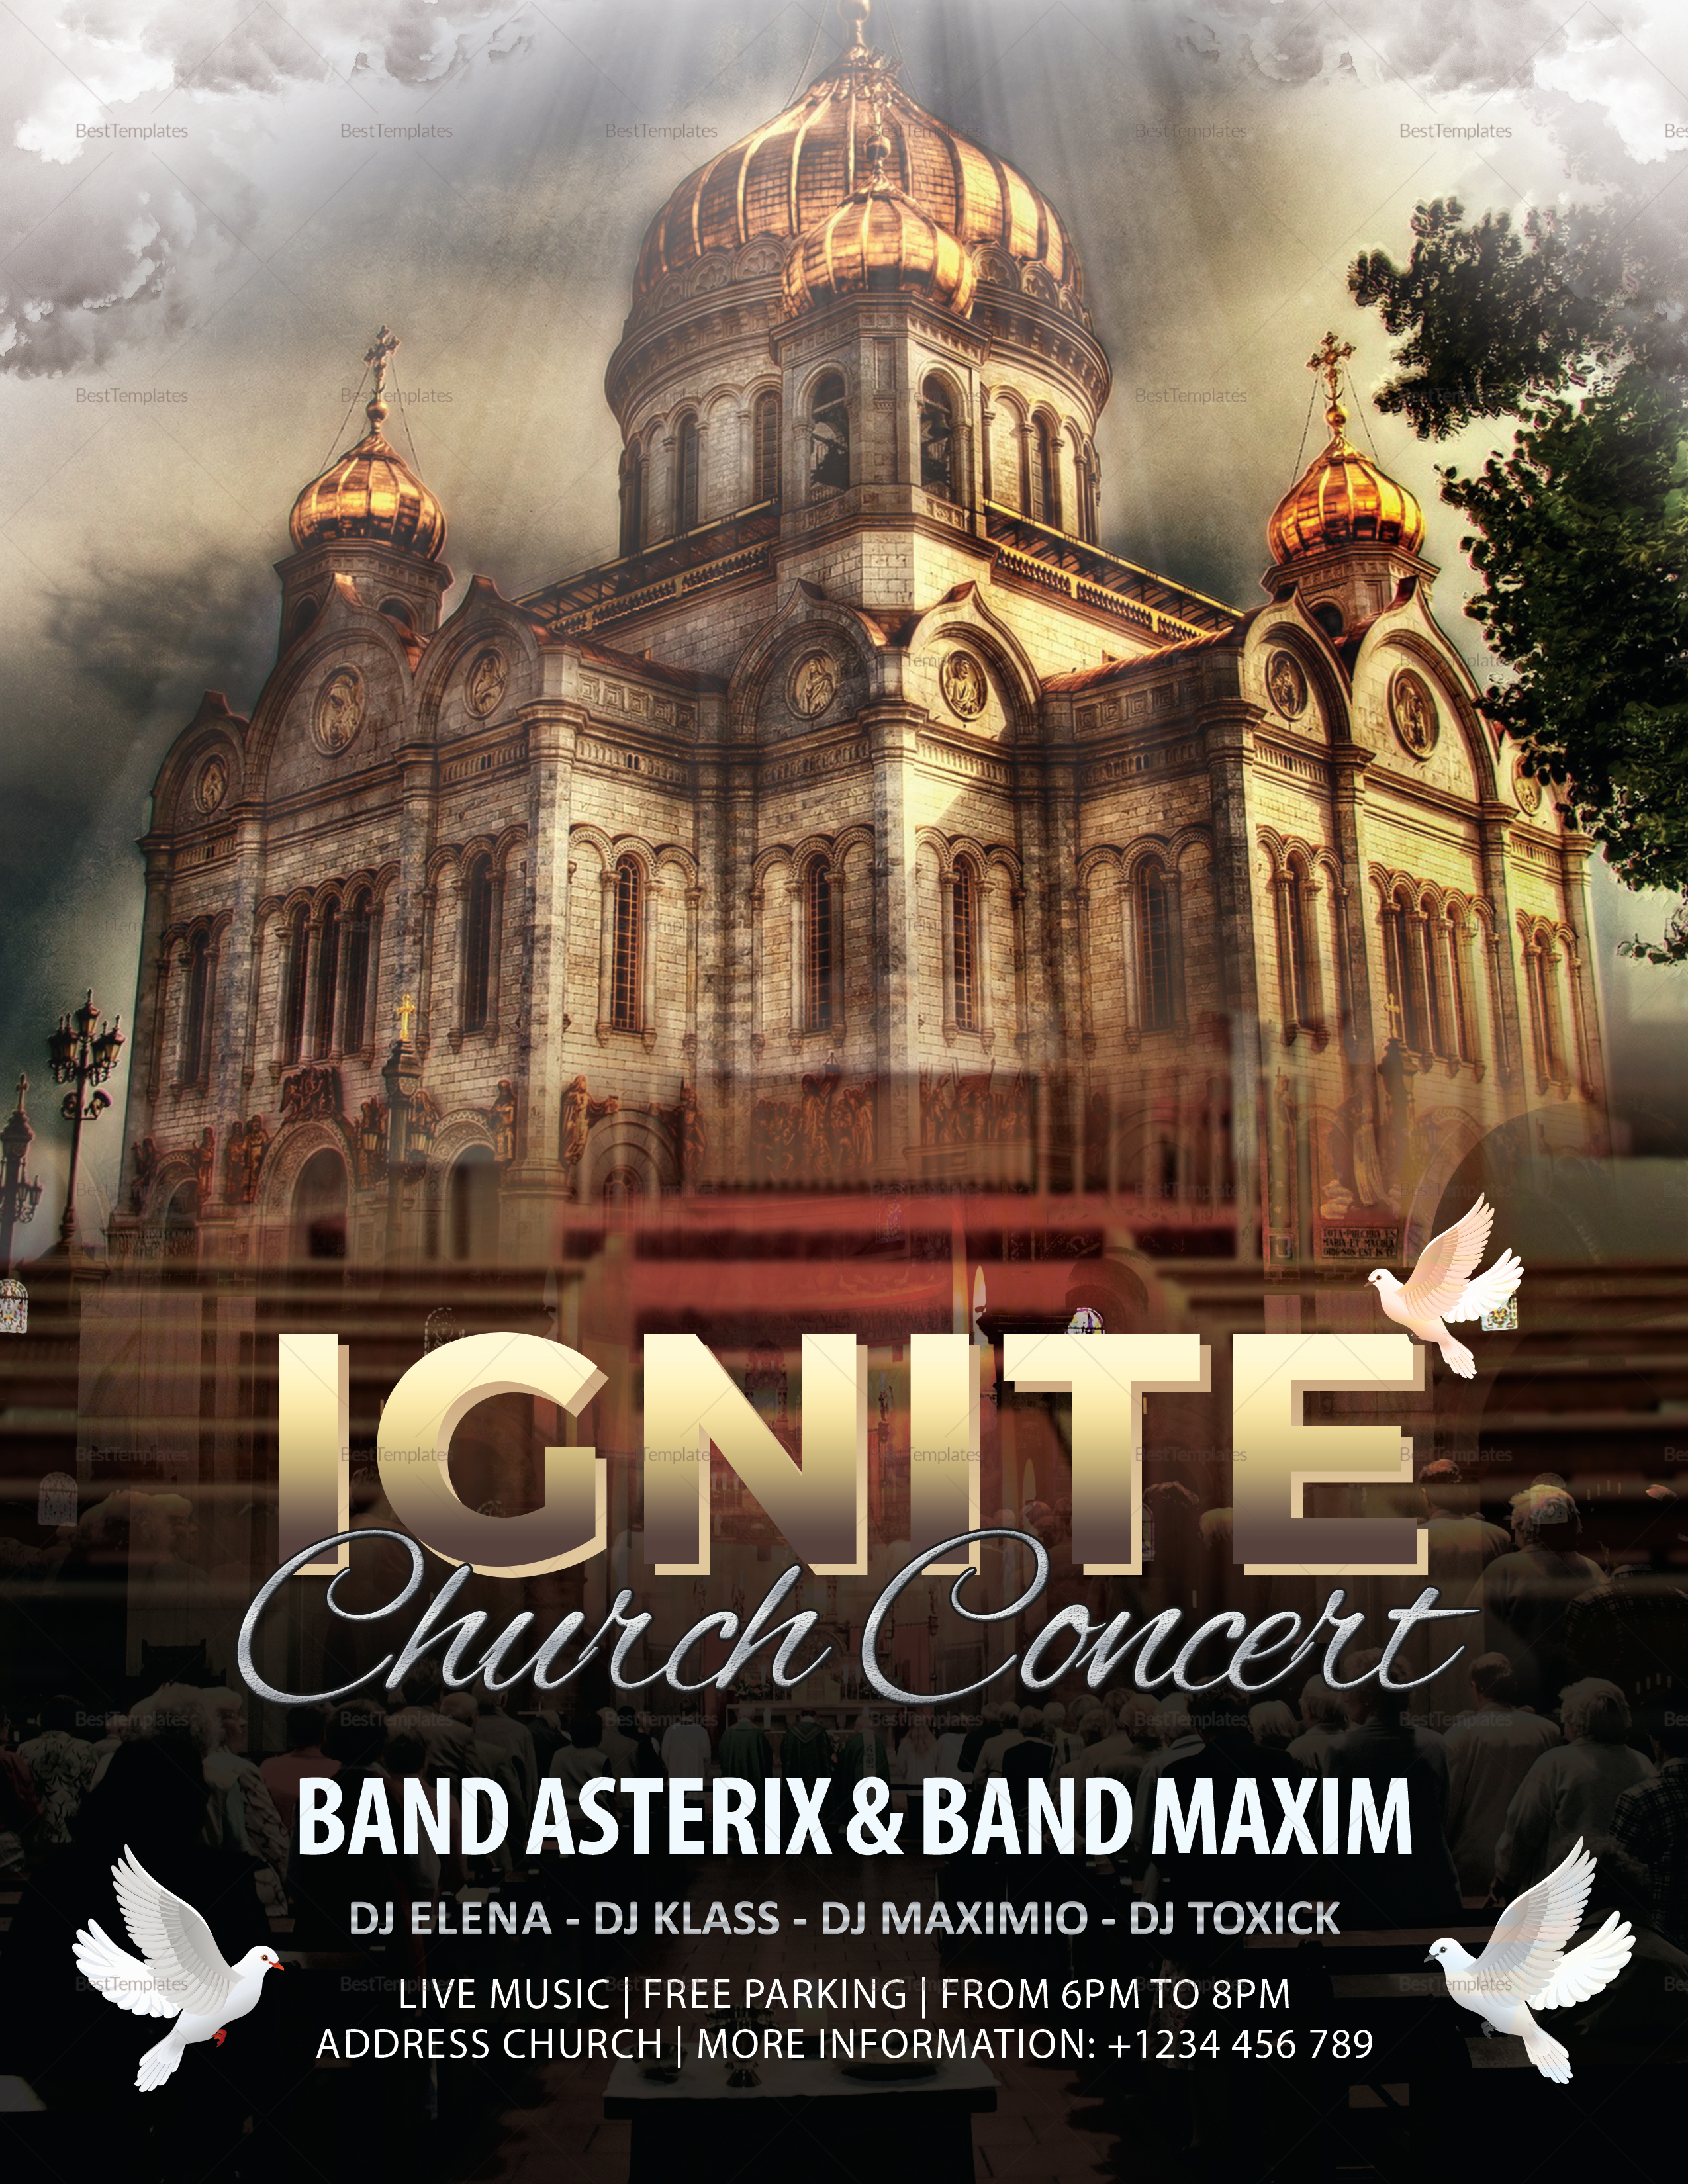 Ignite Church Concert Flyer Template